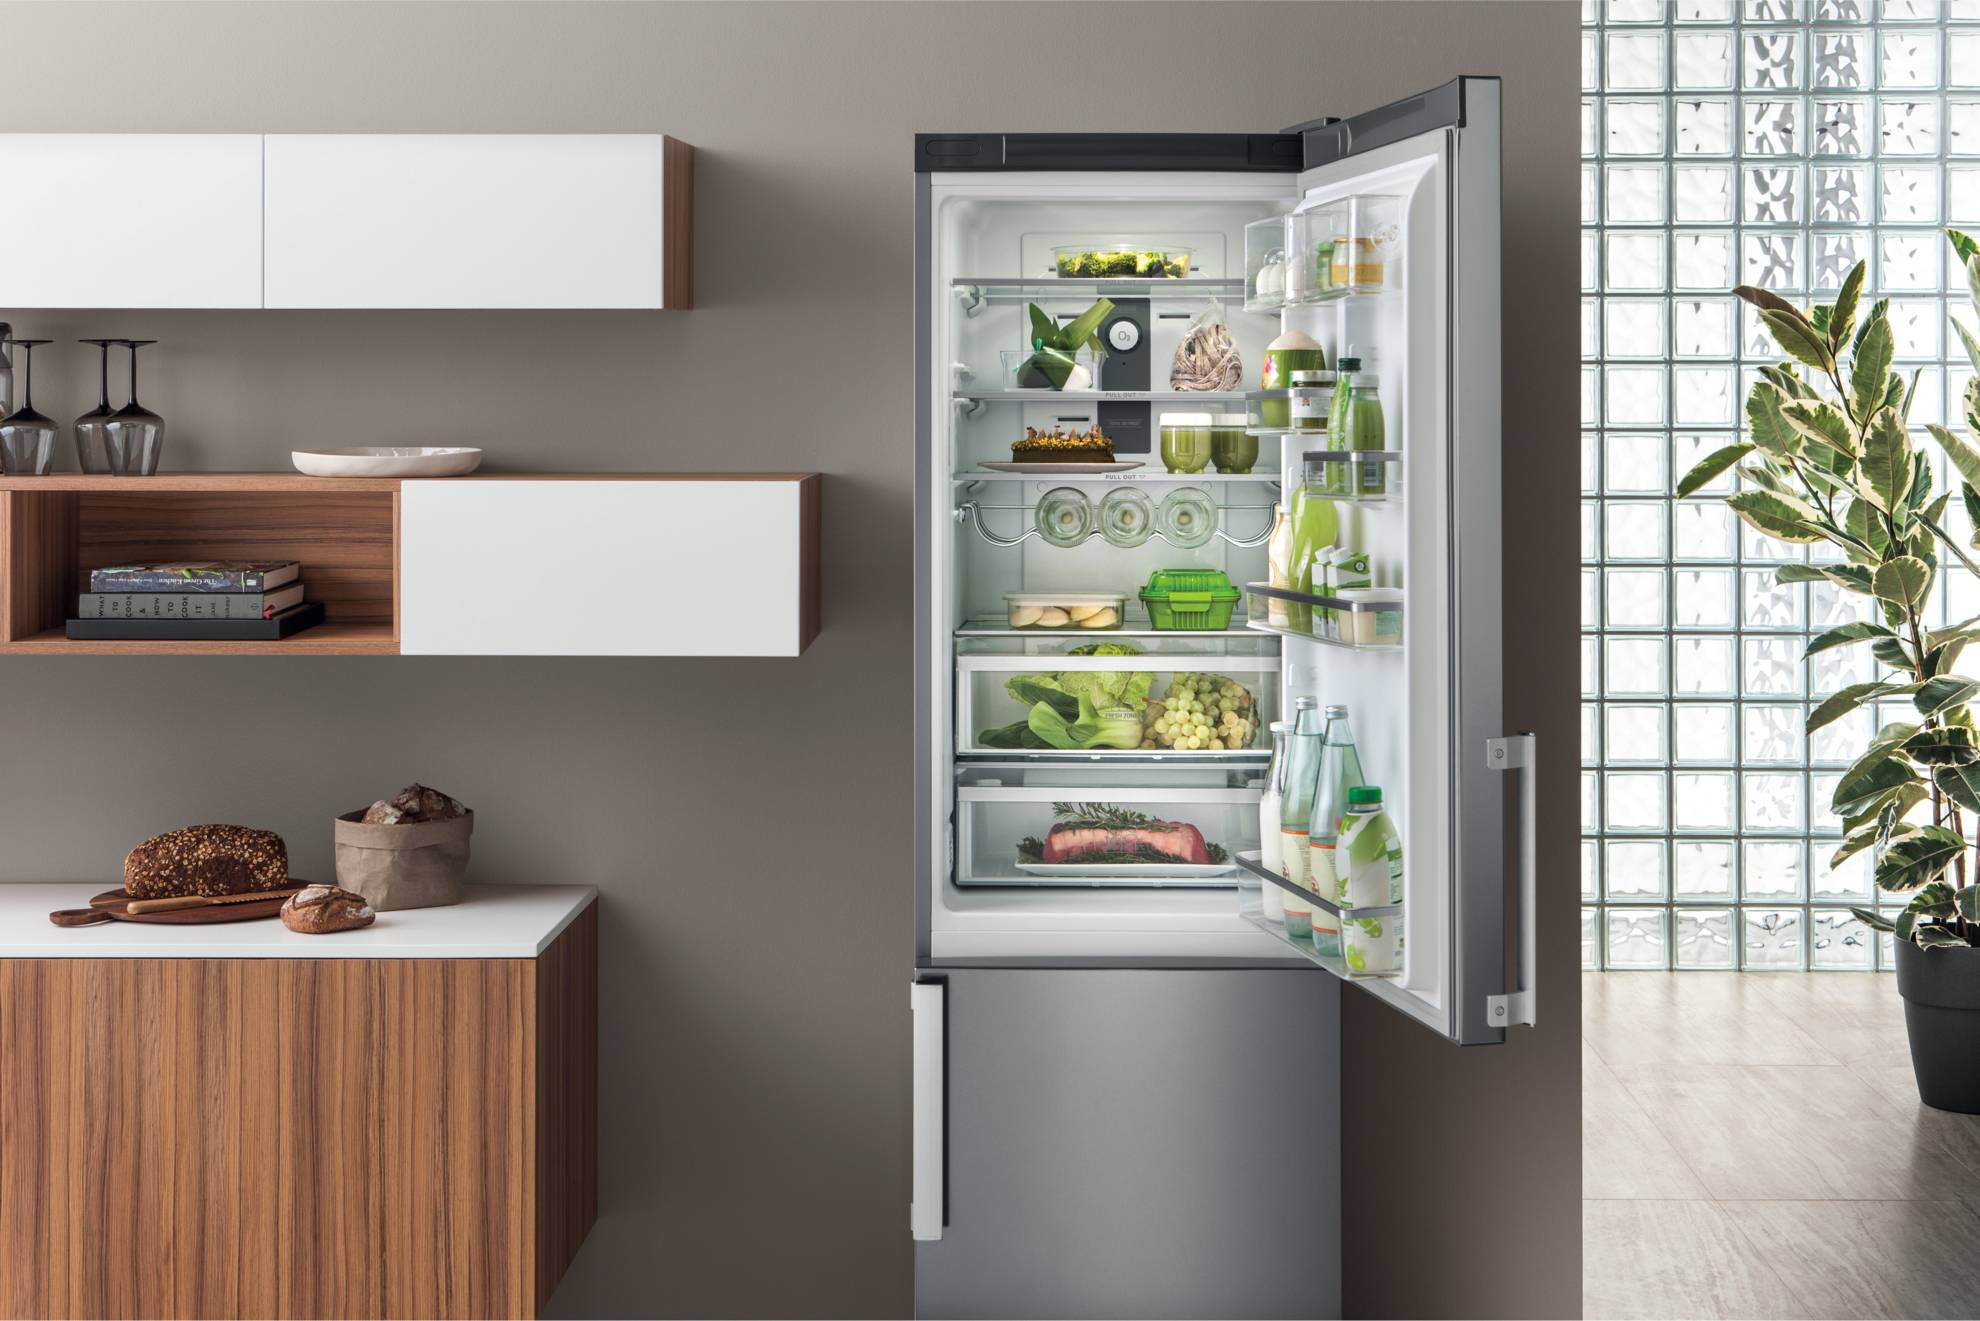 New Energy Labels Hotpoint